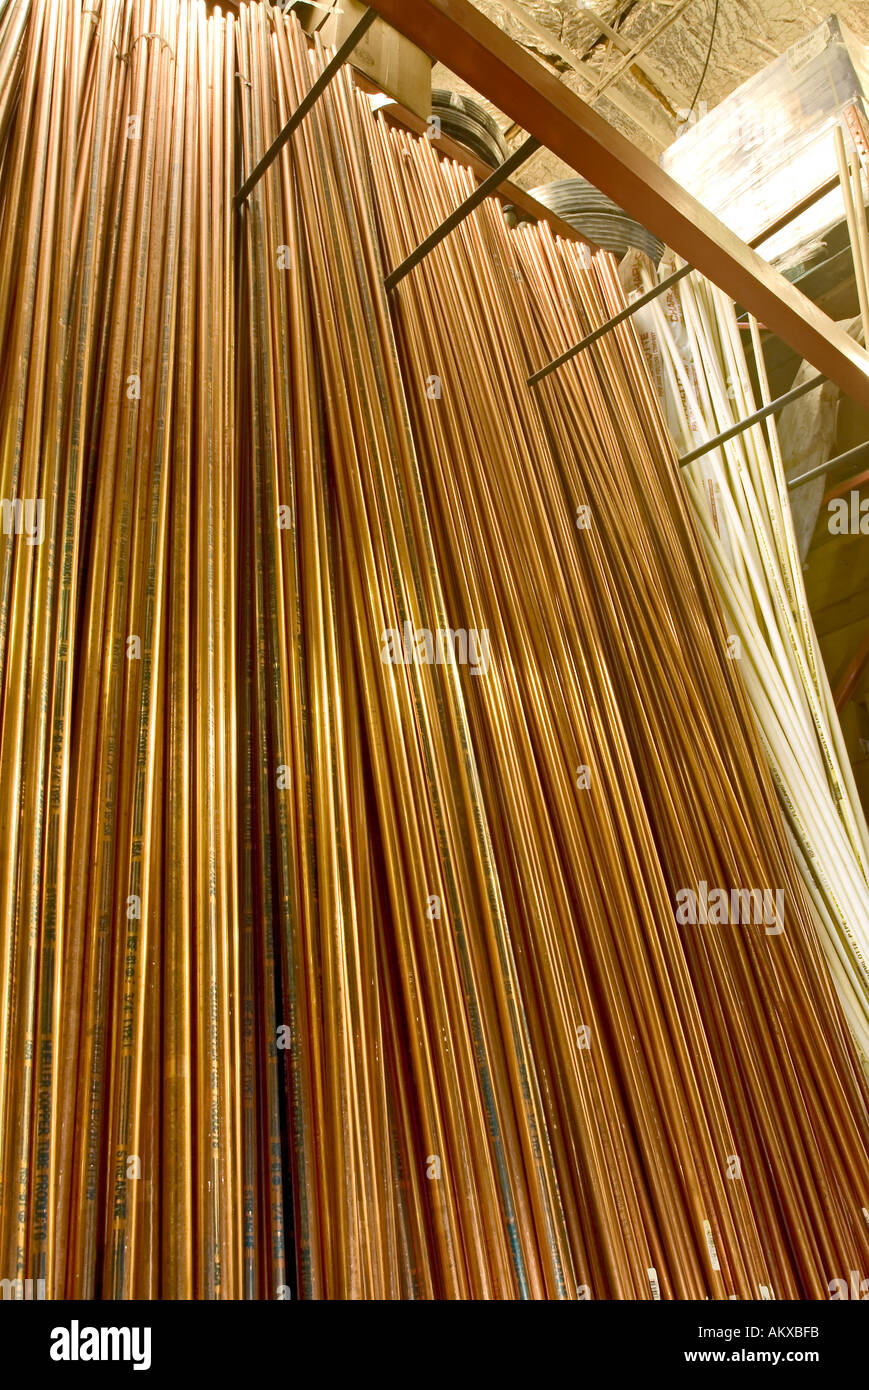 royalty free photo image stock ladder on cable pipe install rack